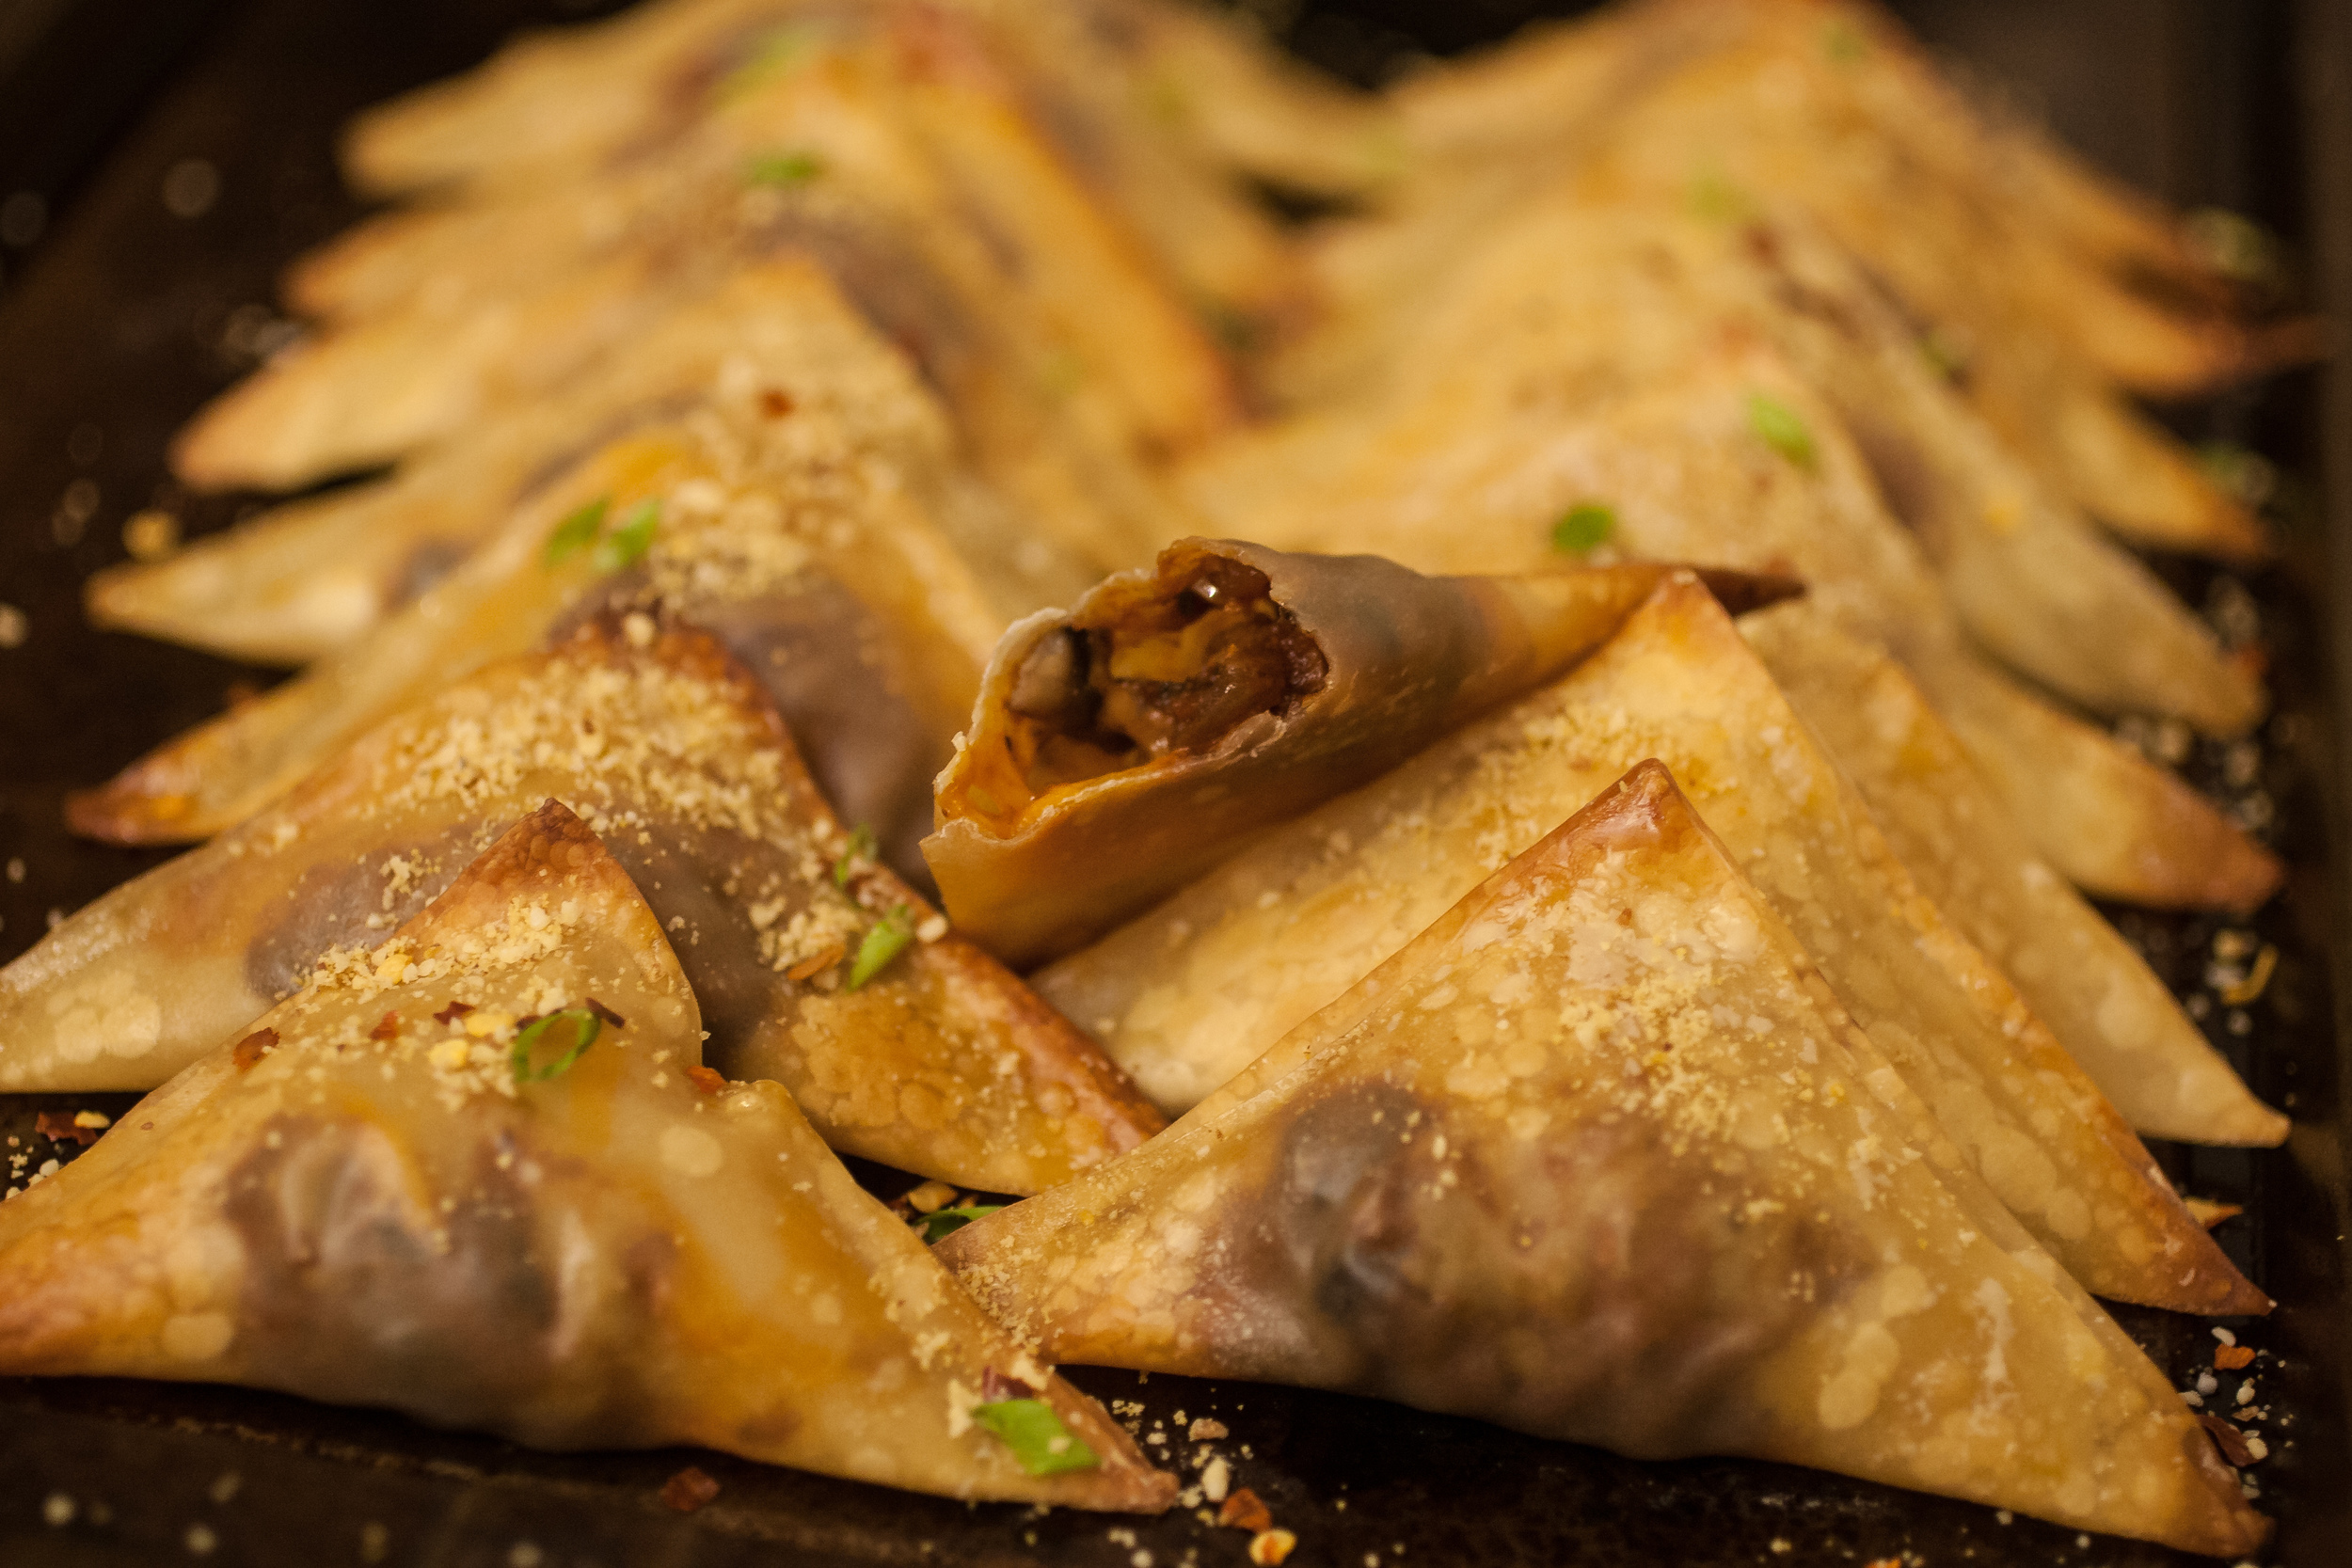 Produce On Parade - Easy Pizza Gyozas - Easier than pizza, healthier than pizza, and way more fun than pizza, these baked gyozas are a super hit! They make wonderful vegan appetizers; your carnivorous Super Bowl buddies will love them. No cruelty necessary.